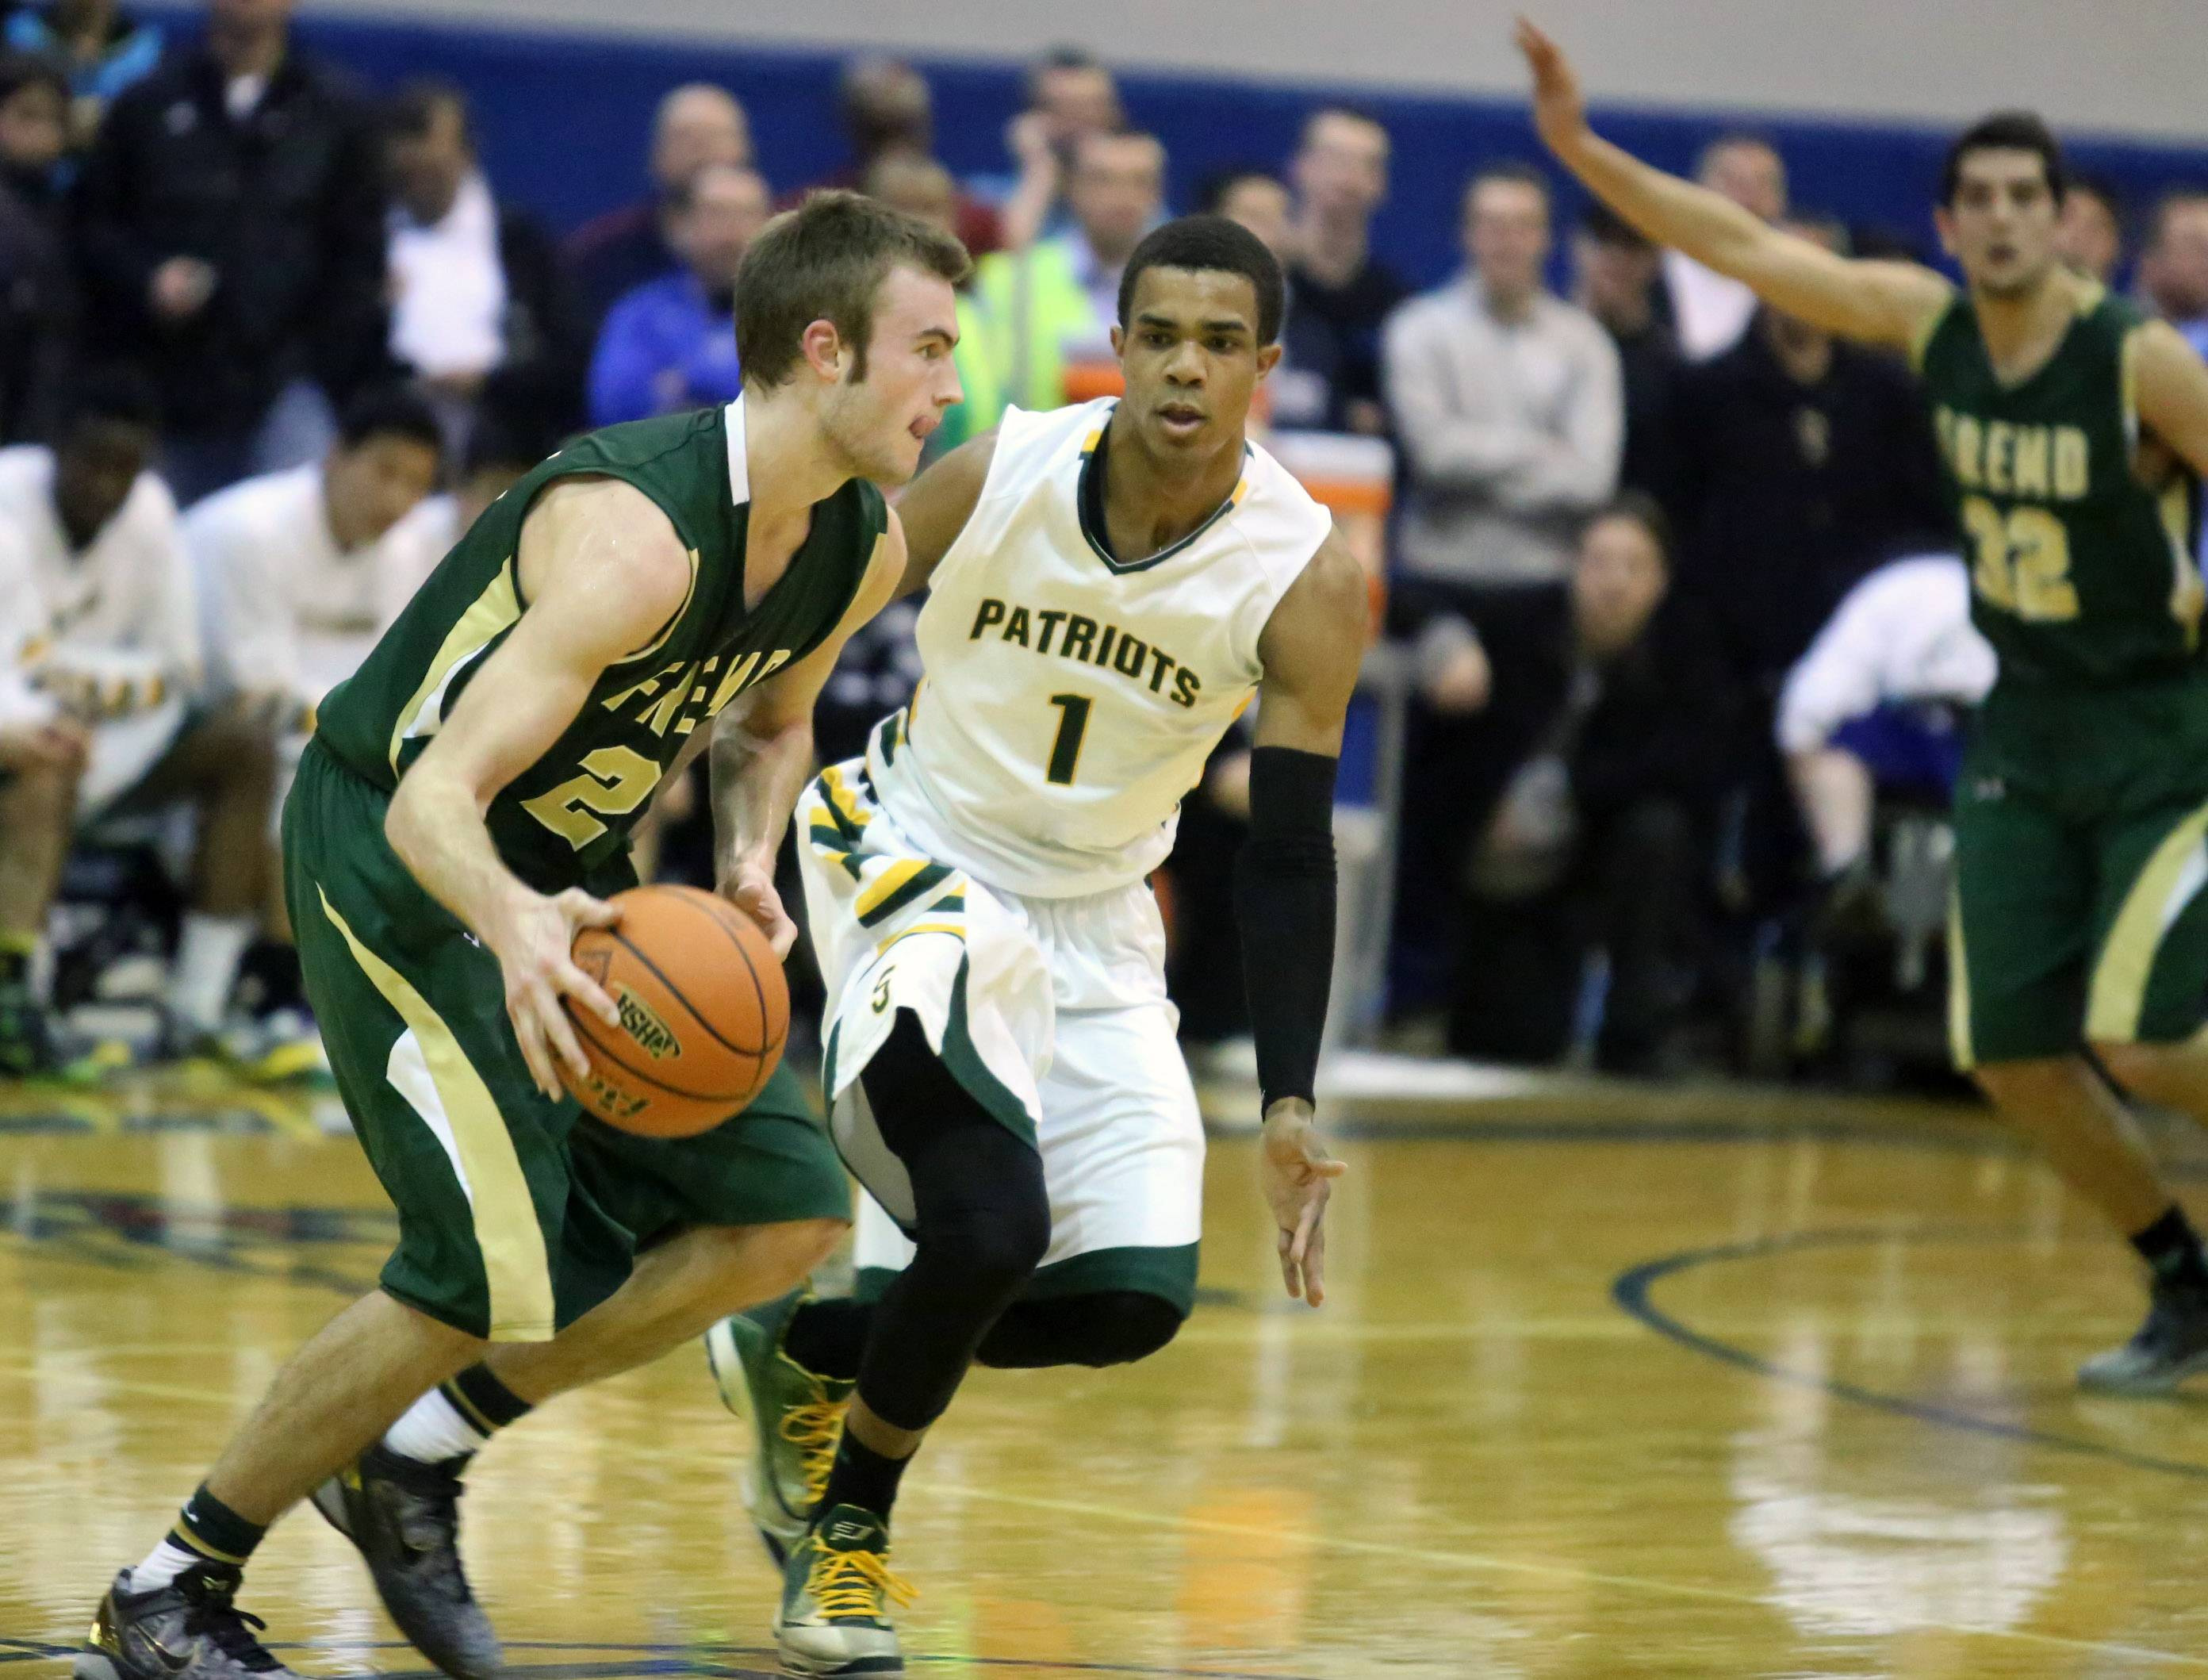 Fremd guard Raymond Riley Glassmann pushes the ball up court against Stevenson defender Connor Cashaw.